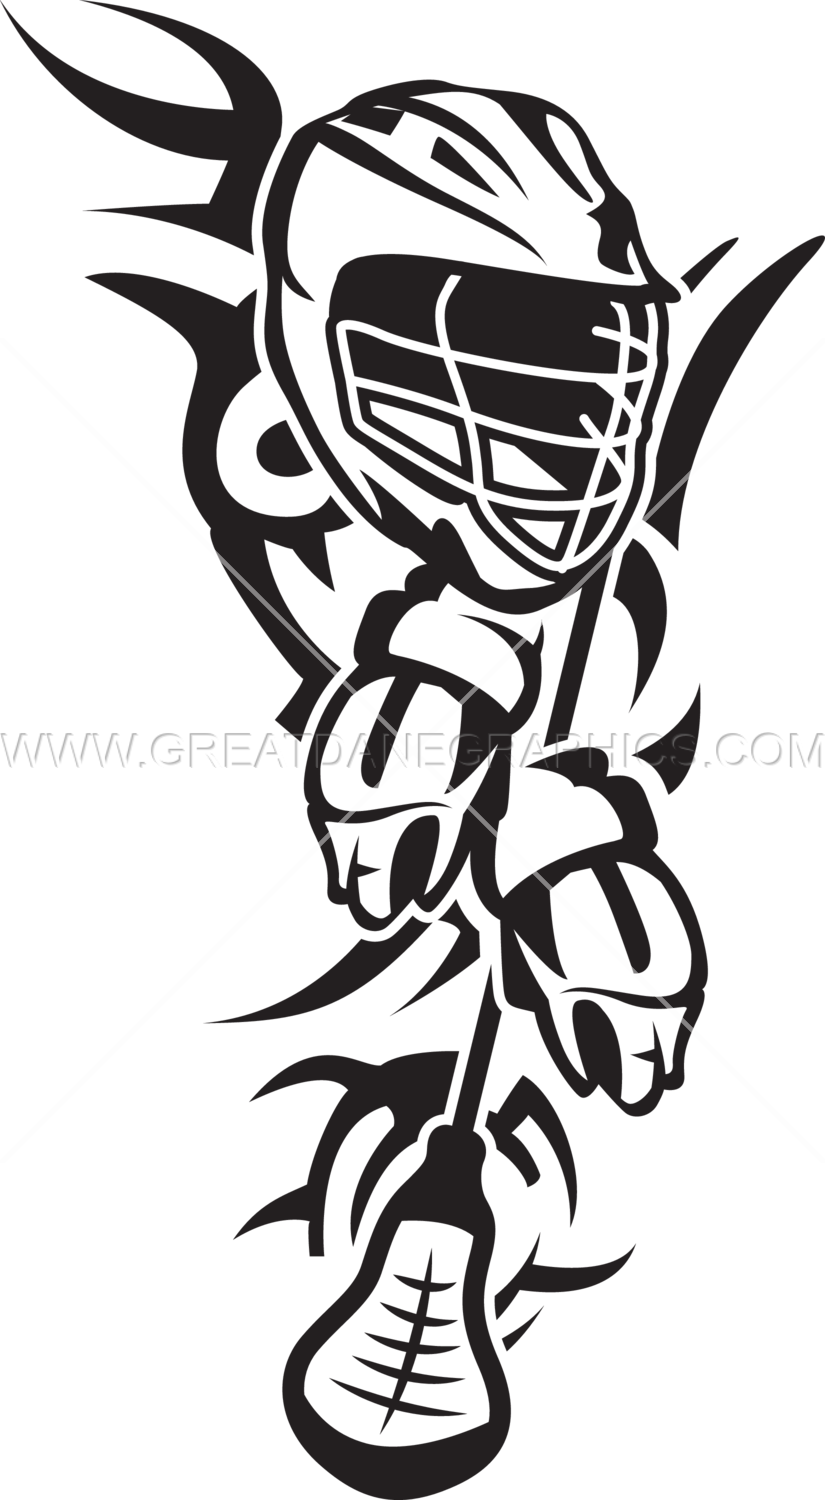 Graphics artwork simplified with. Lacrosse clipart black and white